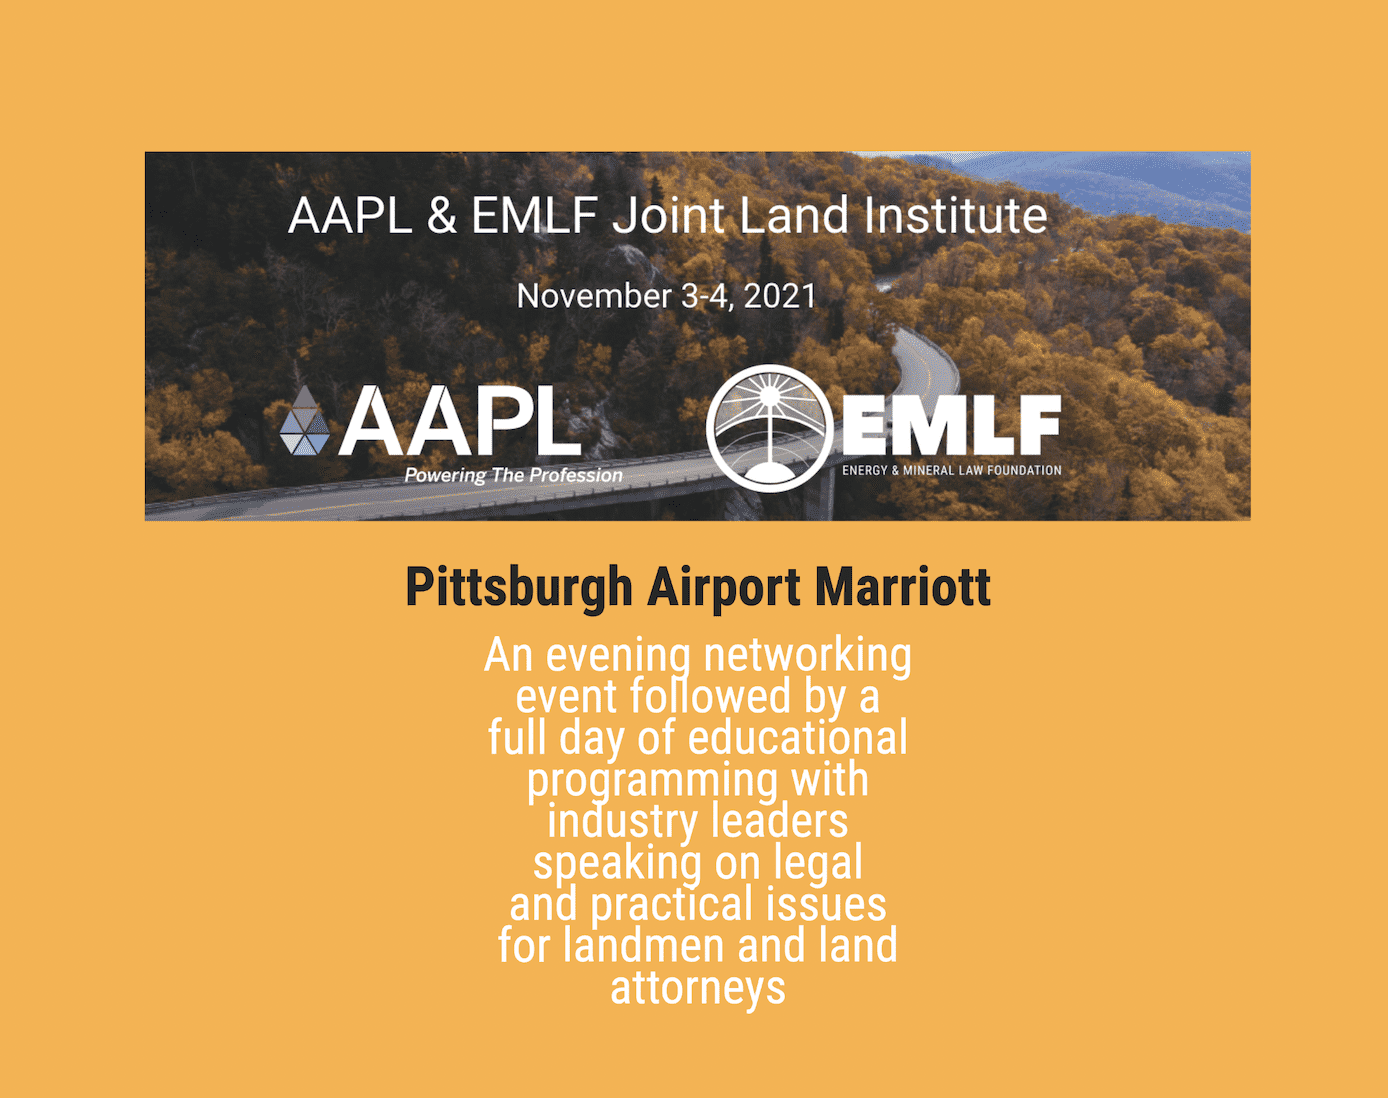 AAPL & EMLF Joint Land Institute